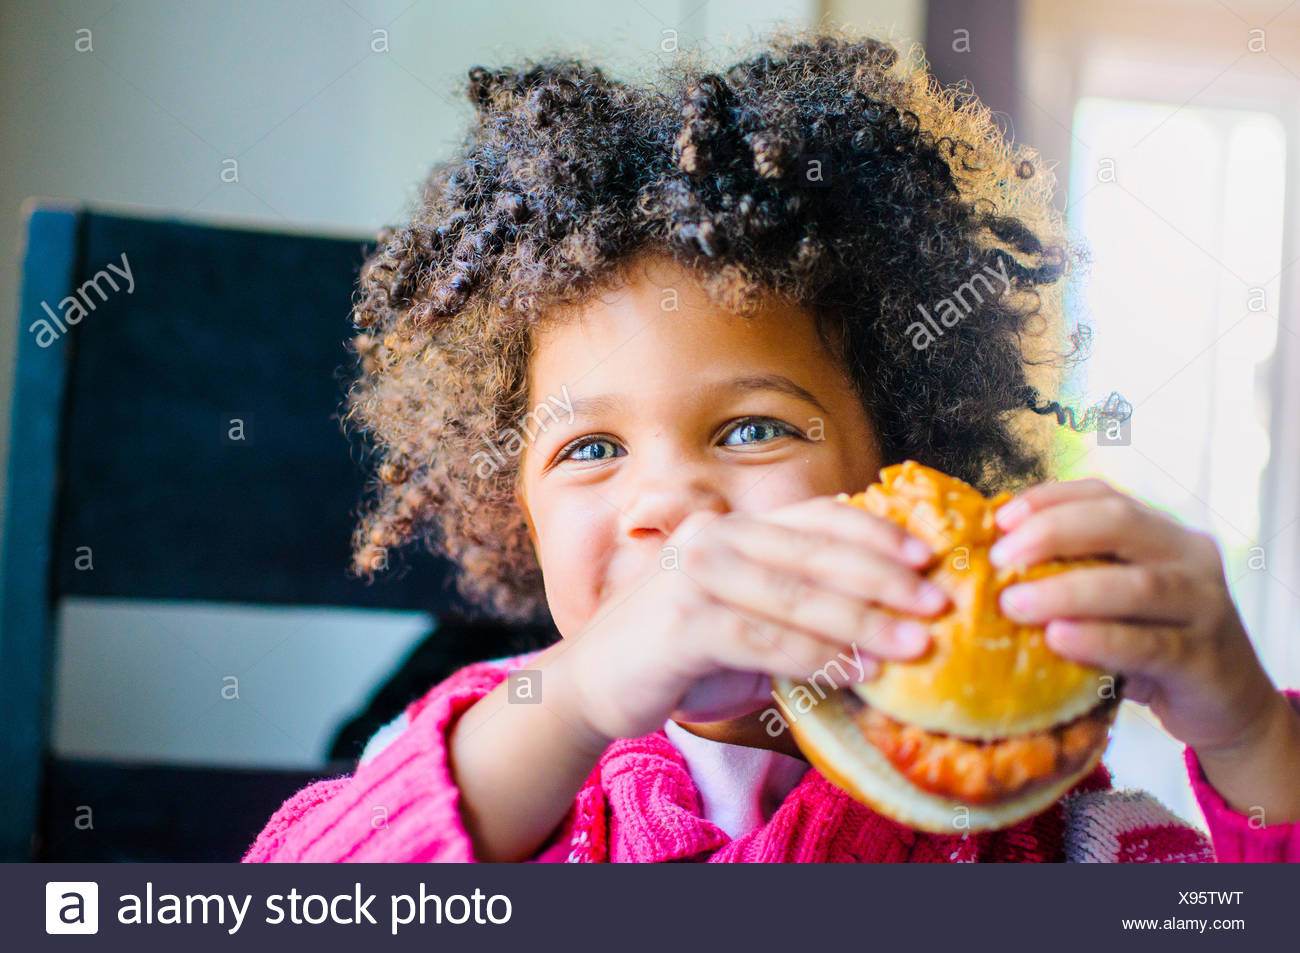 Portrait of cute girl eating hamburger in kitchen - Stock Image